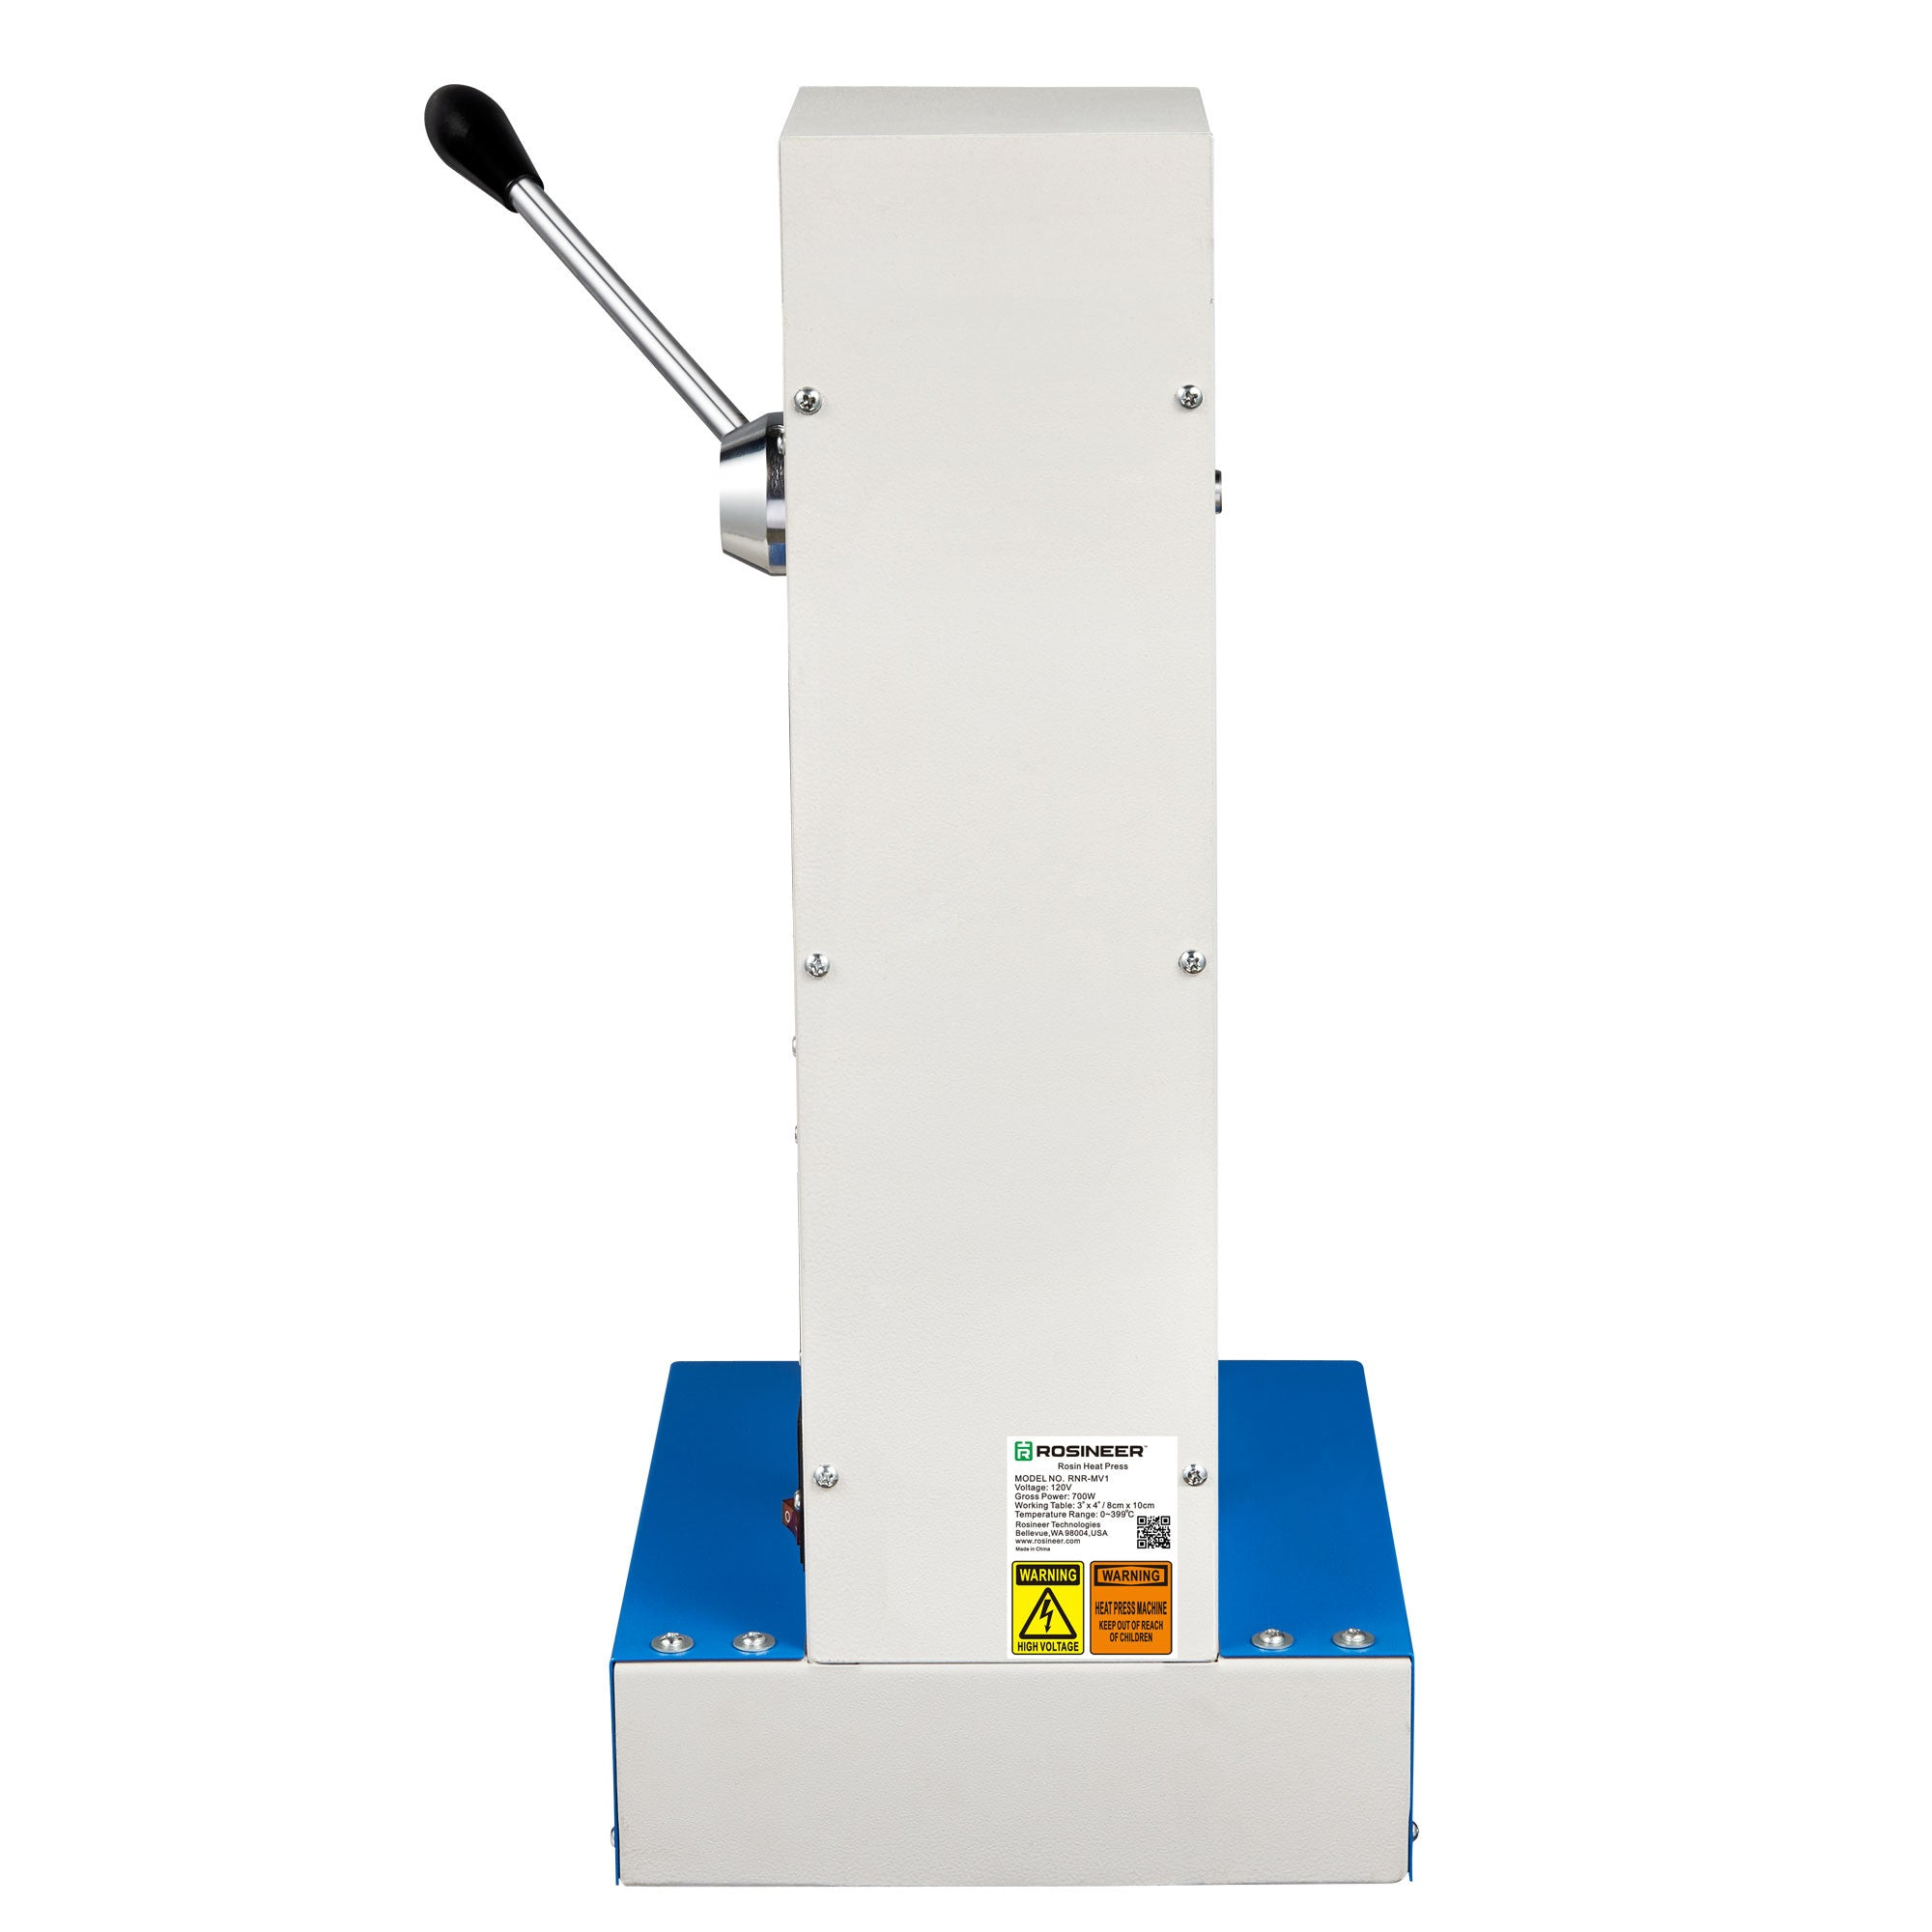 Rosineer RNR-MV1 Manual Rosin Press - Backside